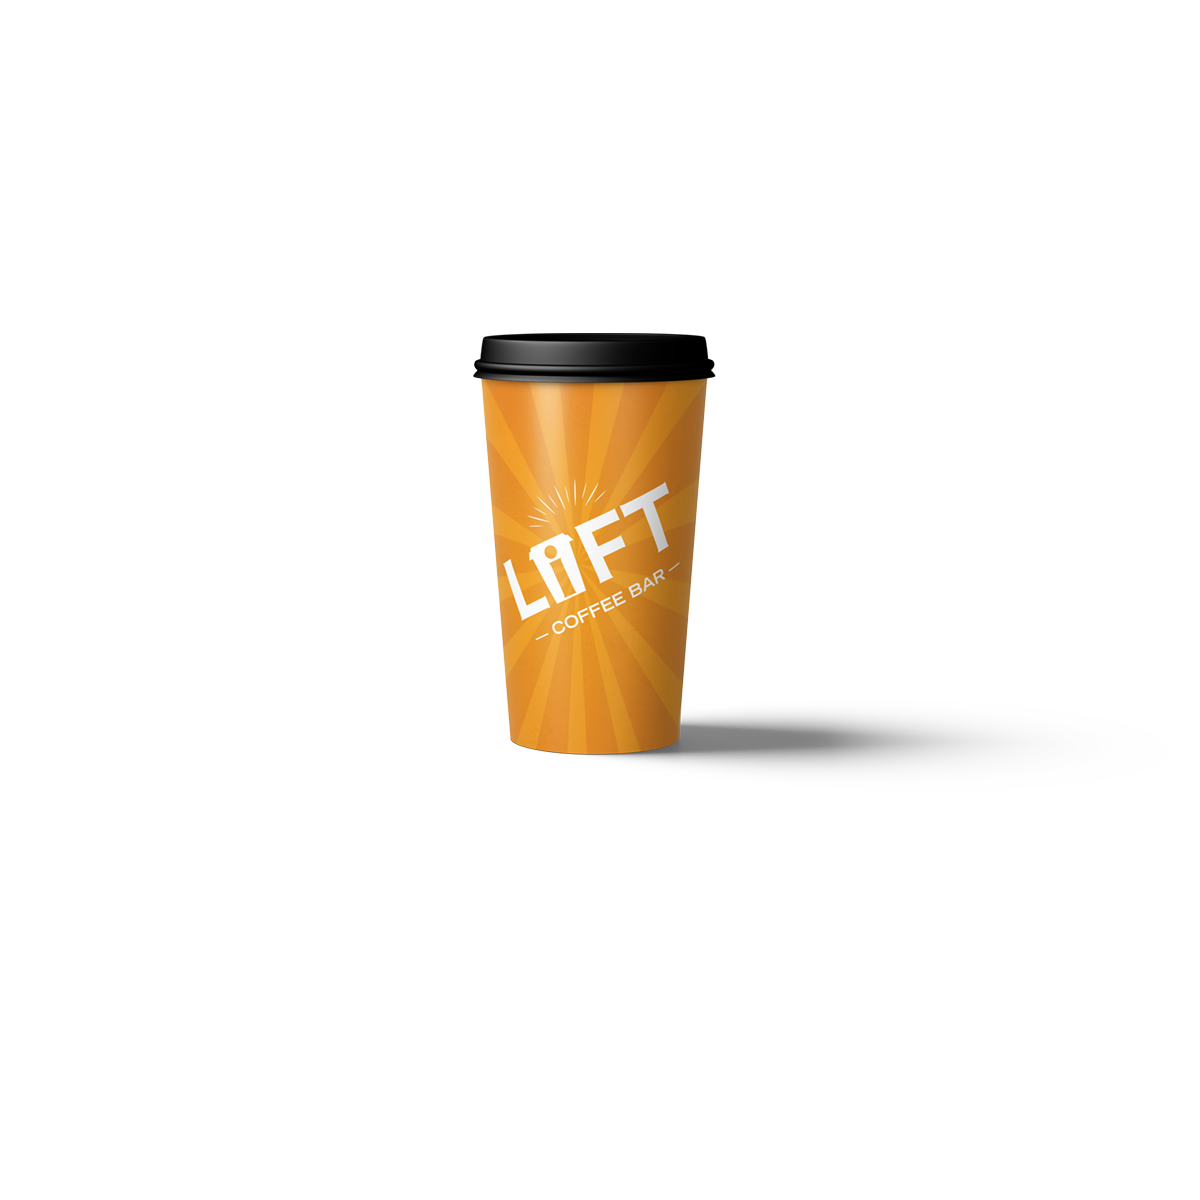 Lift Coffee Bar travel mug